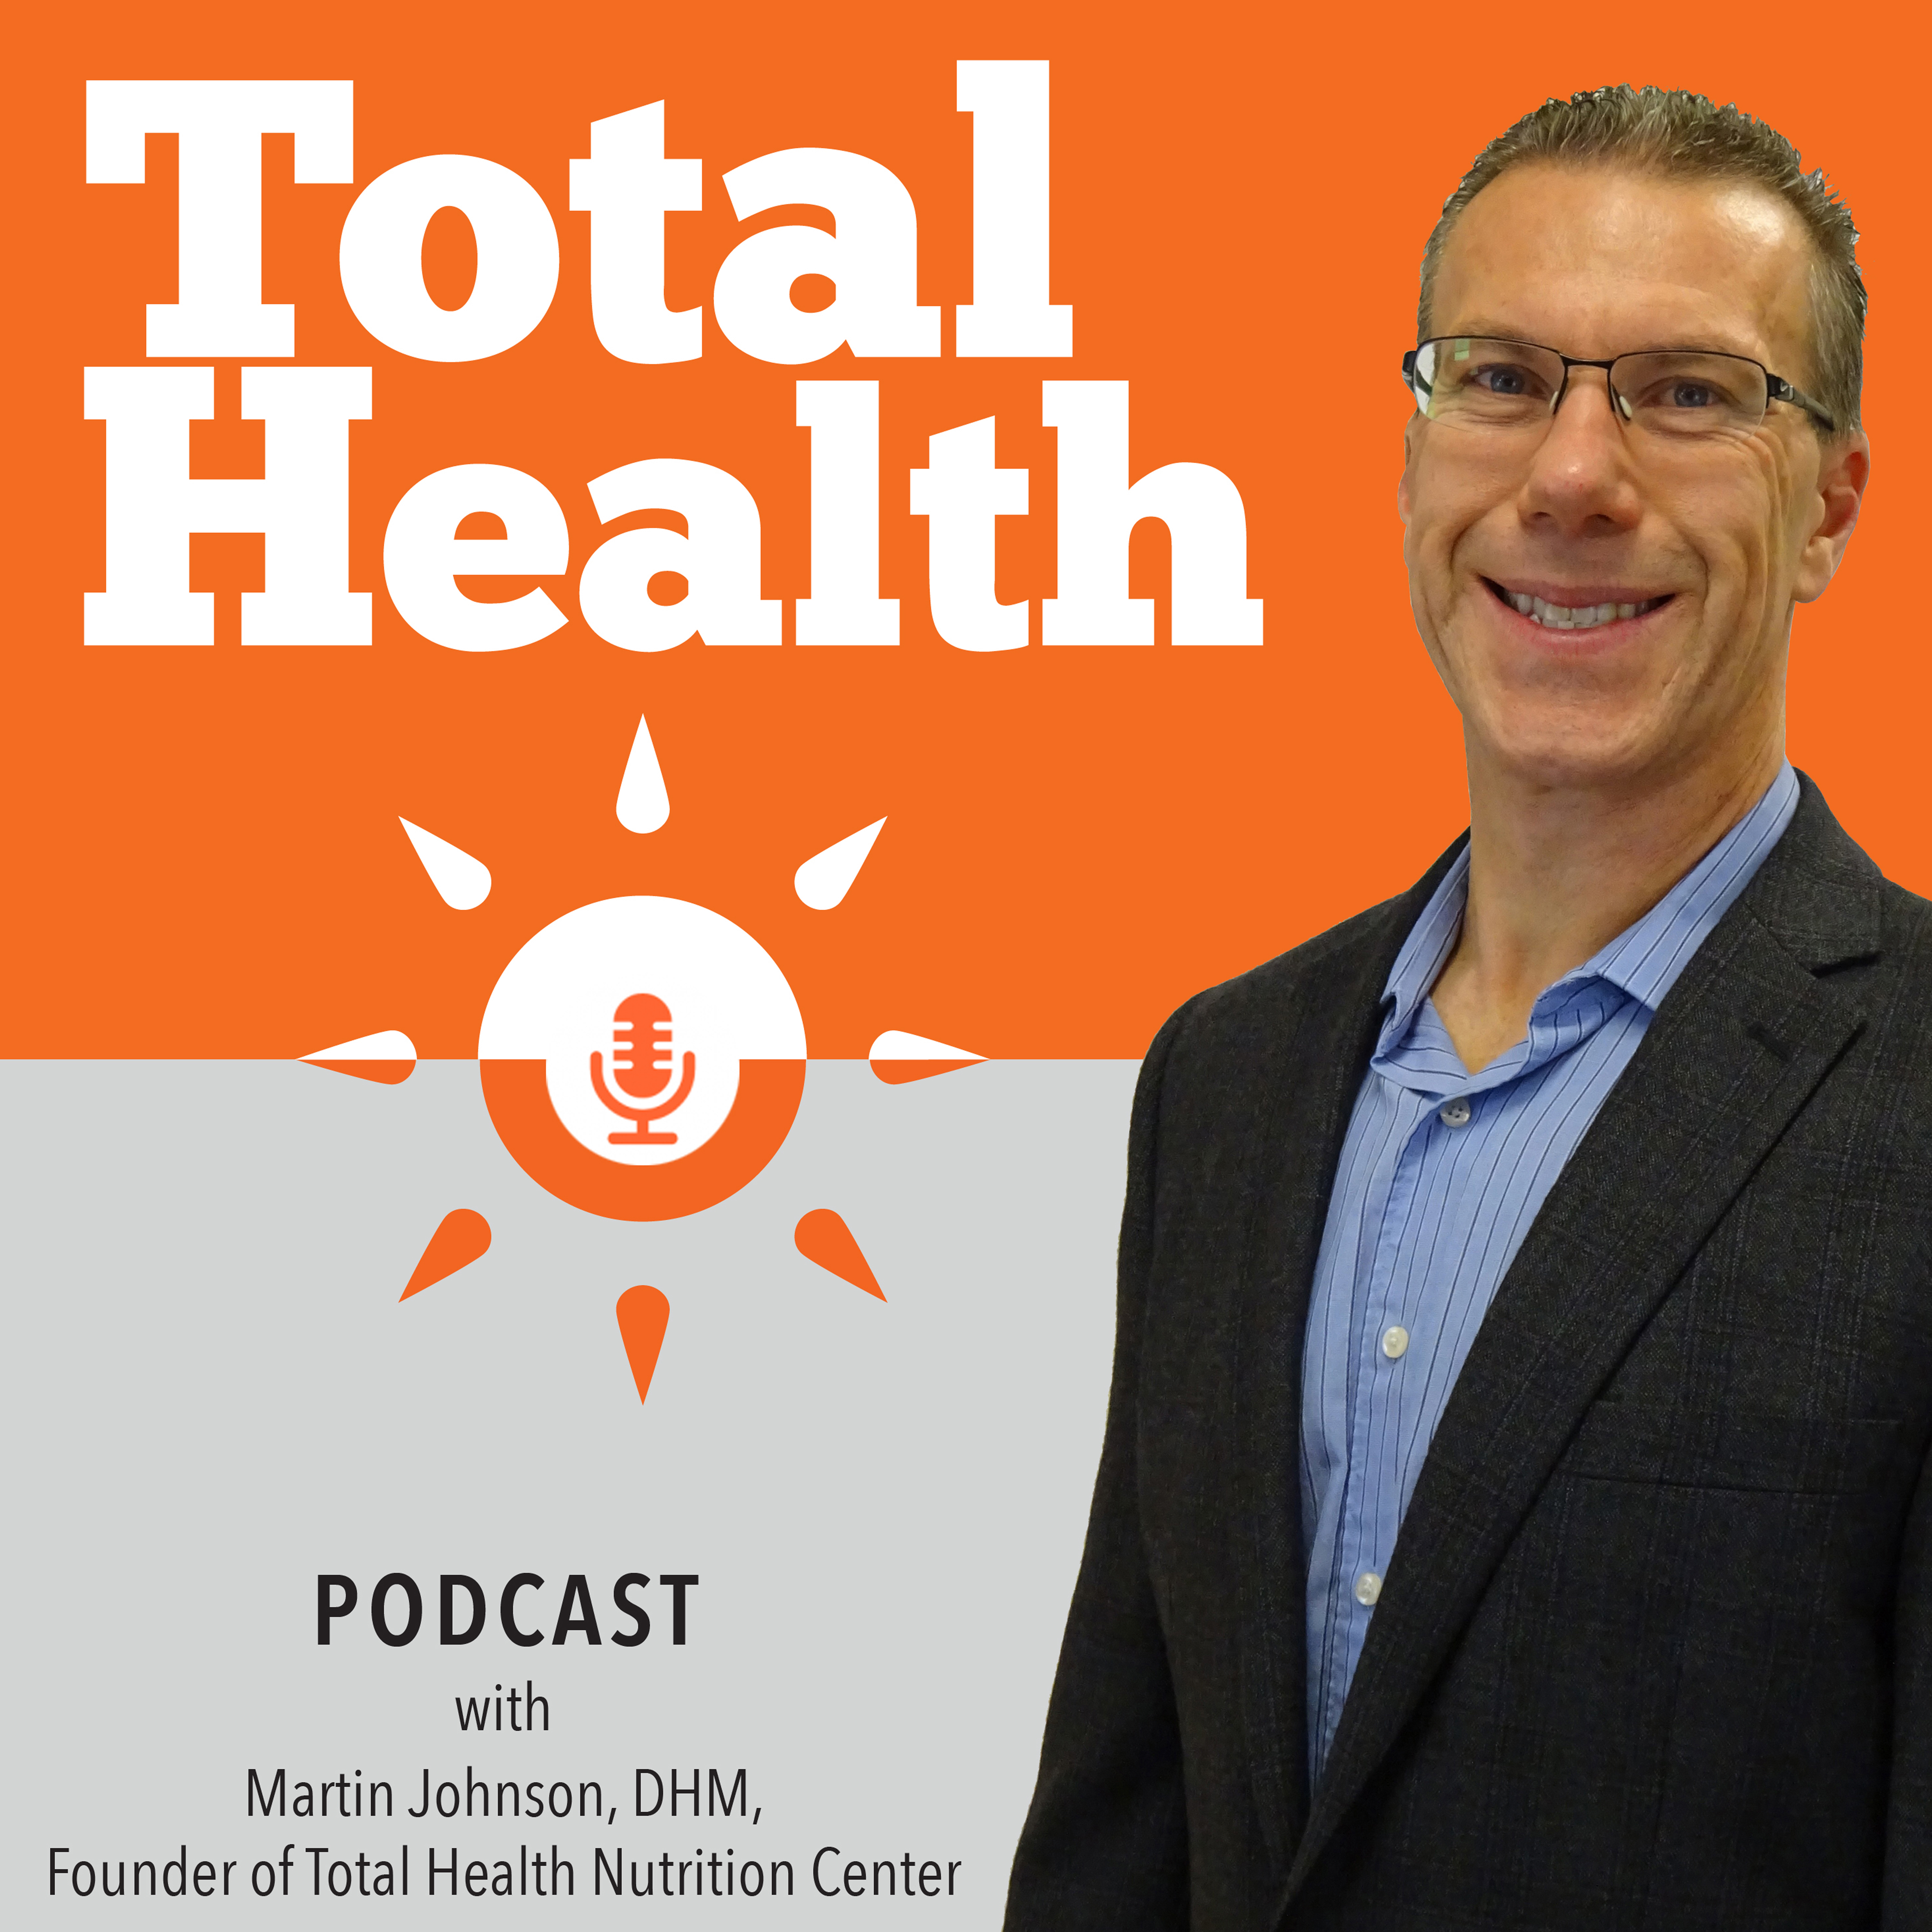 Total Health Podcast show art